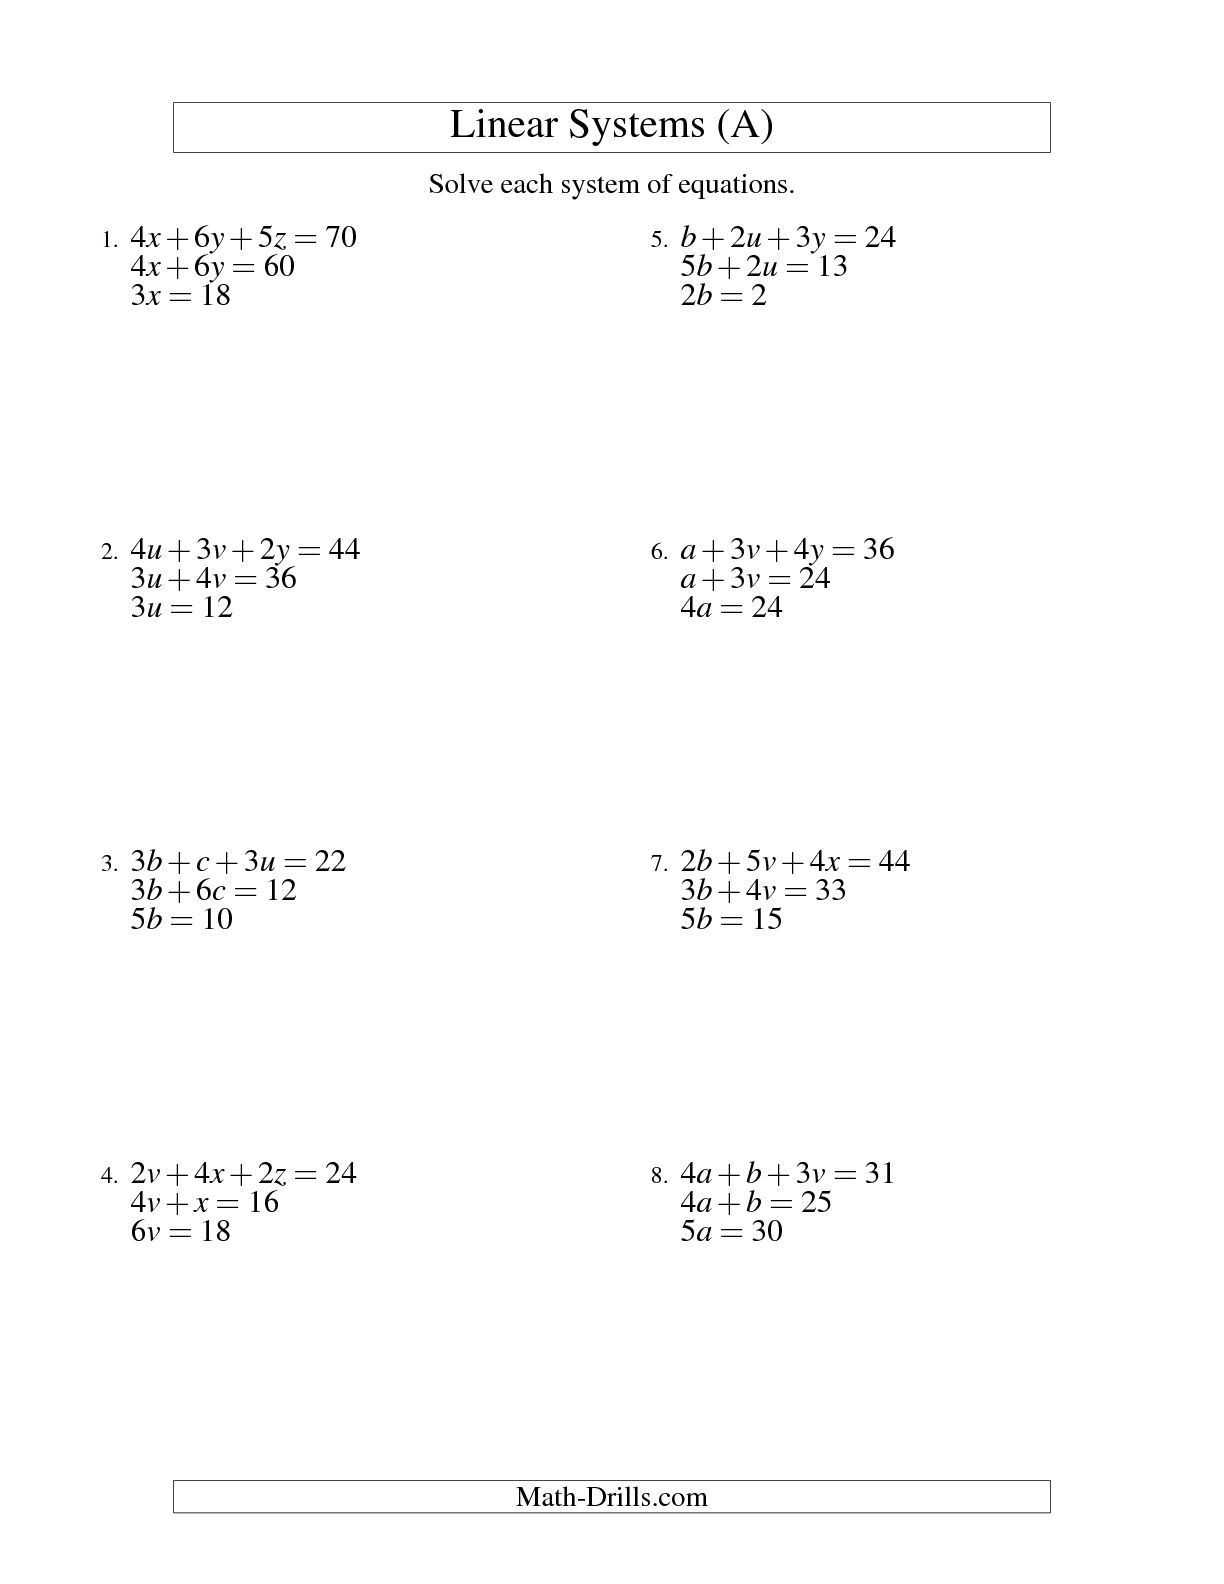 Solving Systems Of Equations Word Problems Worksheet Answer Key together with System Equations Word Problems Geometry Inspirationa solving